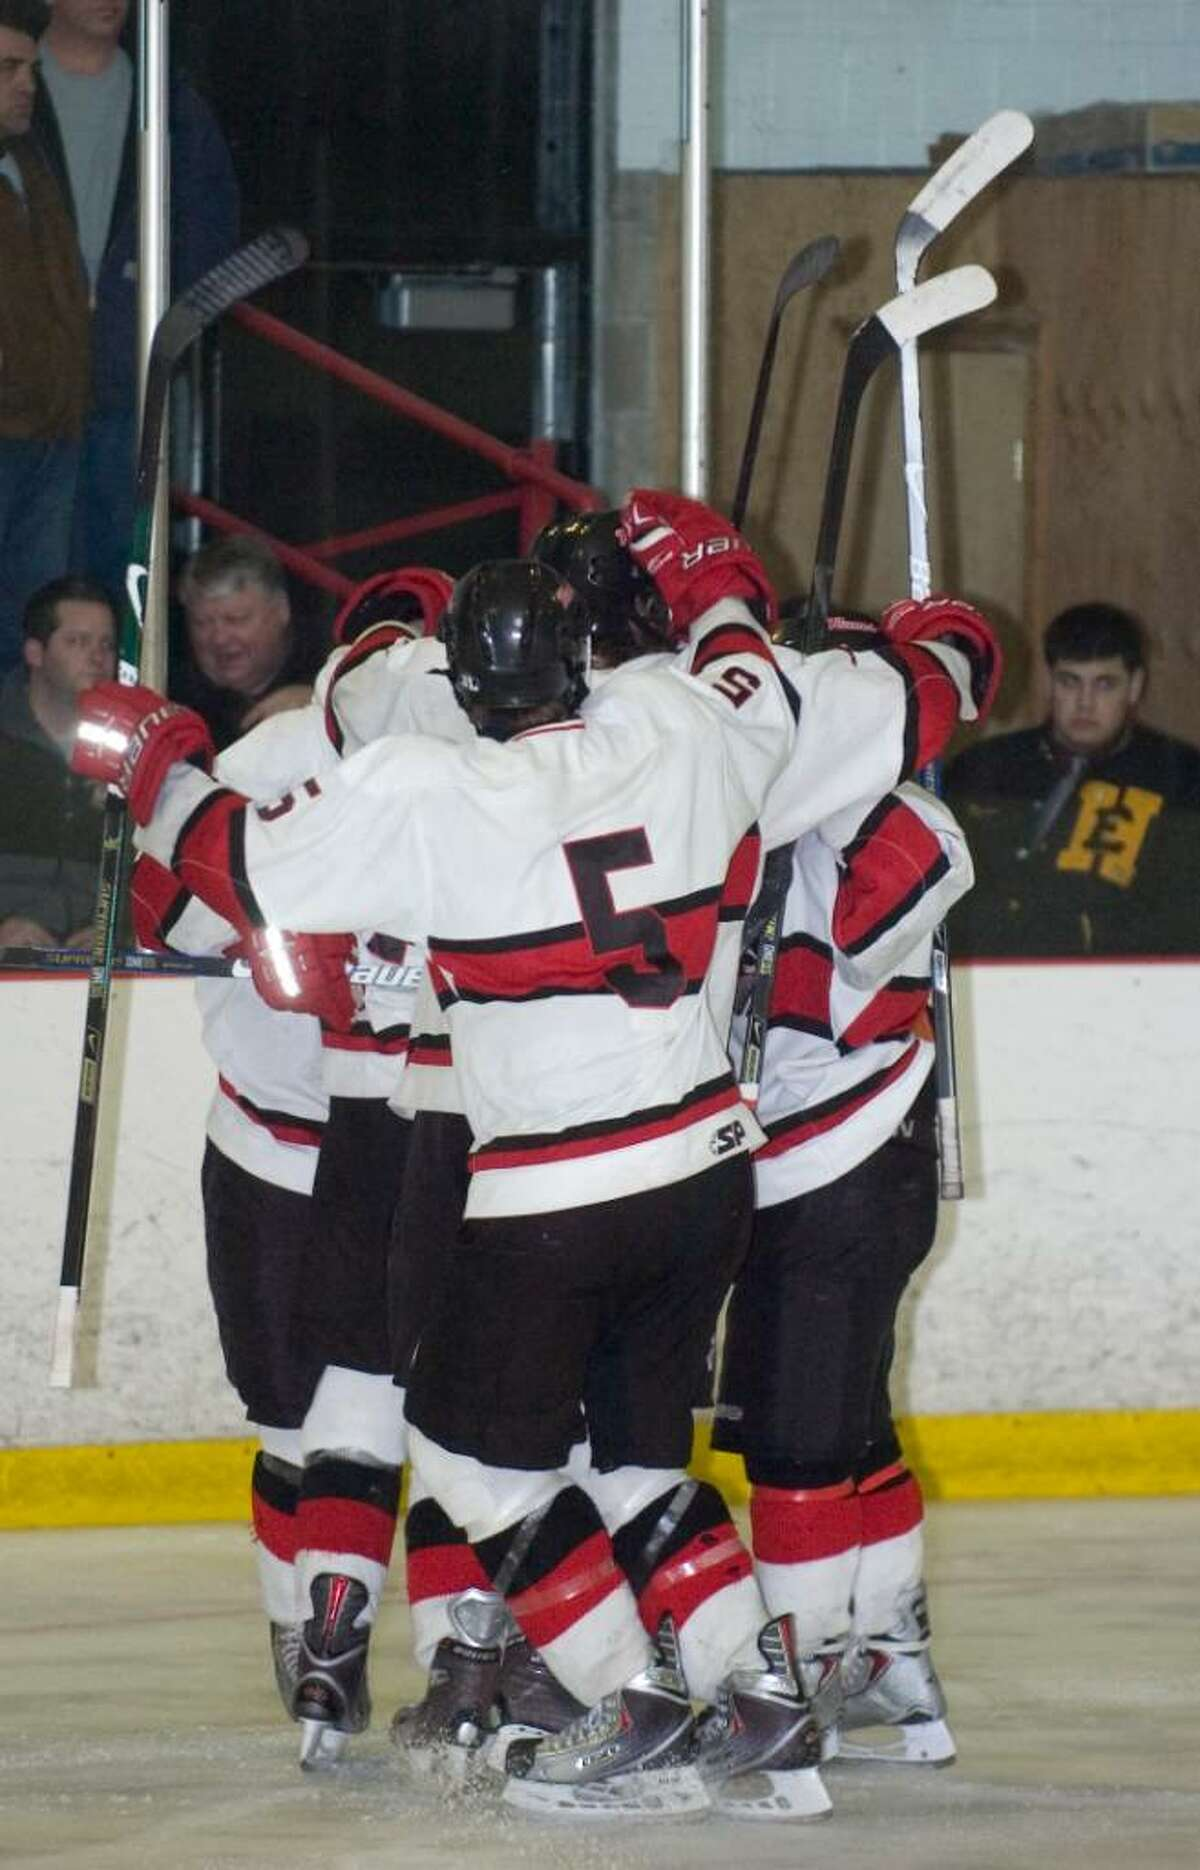 New Canaan celebrates after scoring a goal during the first round of the CIAC Division I ice hockey tournament at the Darien Ice Rink in Darien, Conn. on Wednesday, March 10, 2010.